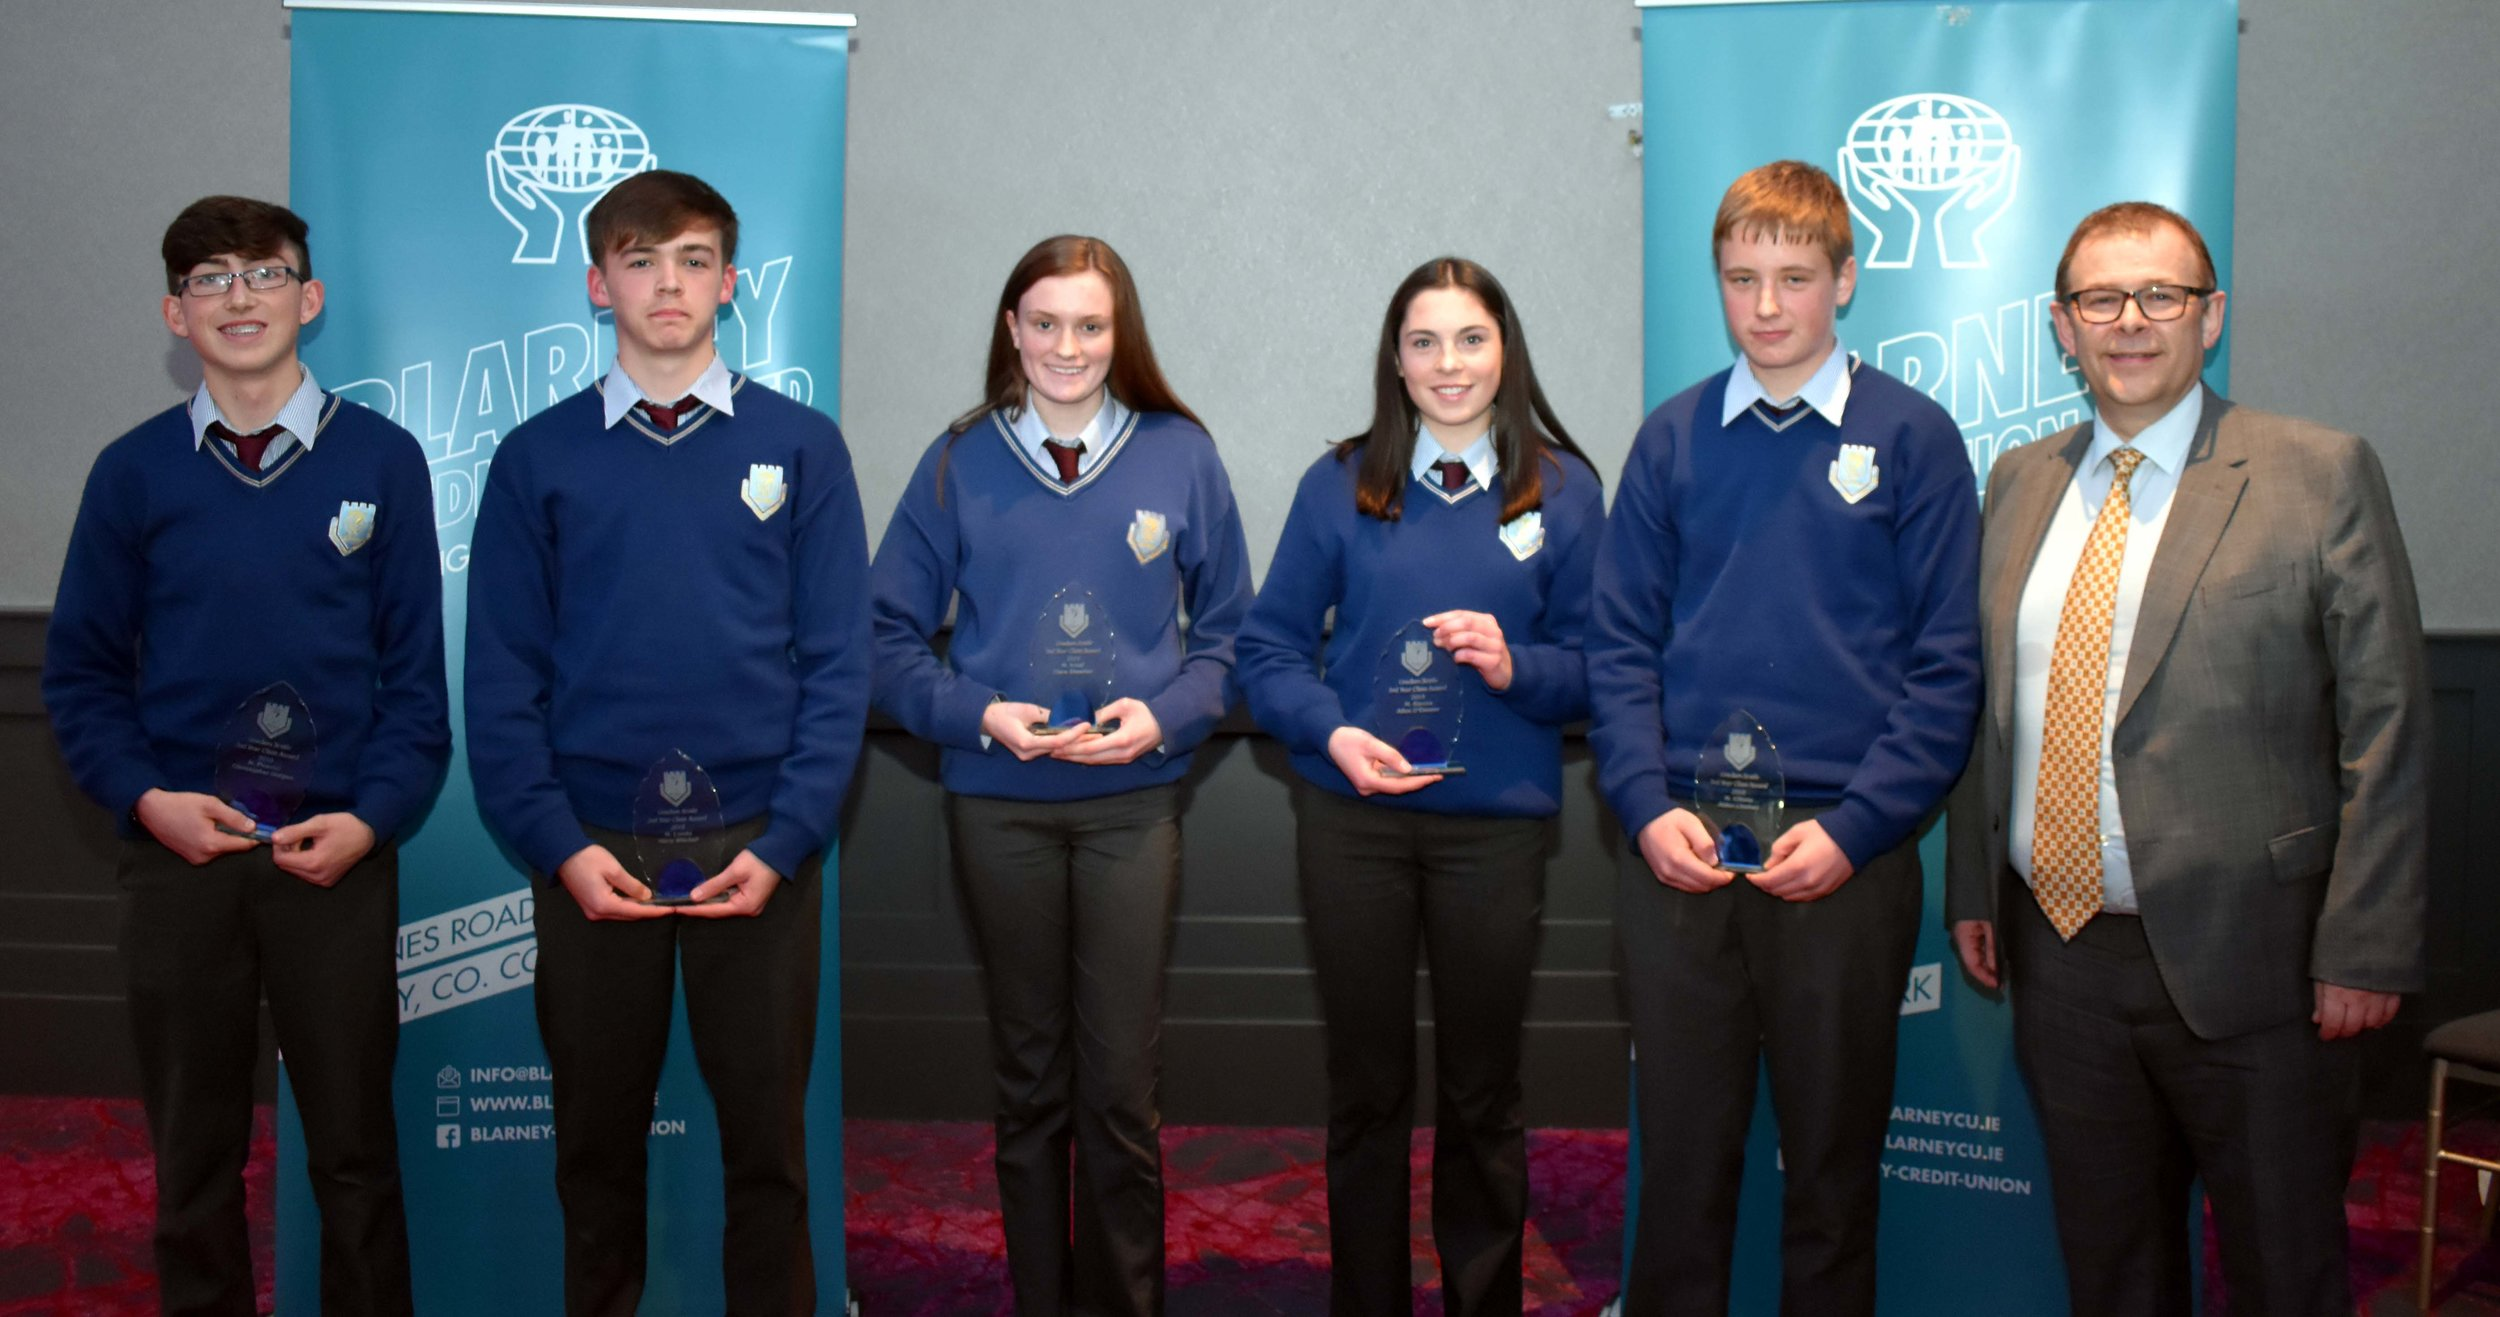 Third Year Class Awards: Christopher Horgan, Harry Mitchell, Ciara Sheehan, Alice O' Connor and Aidan Linehan. (Pictured with Mark McGloughlin - BOM and Blarney Credit Union)